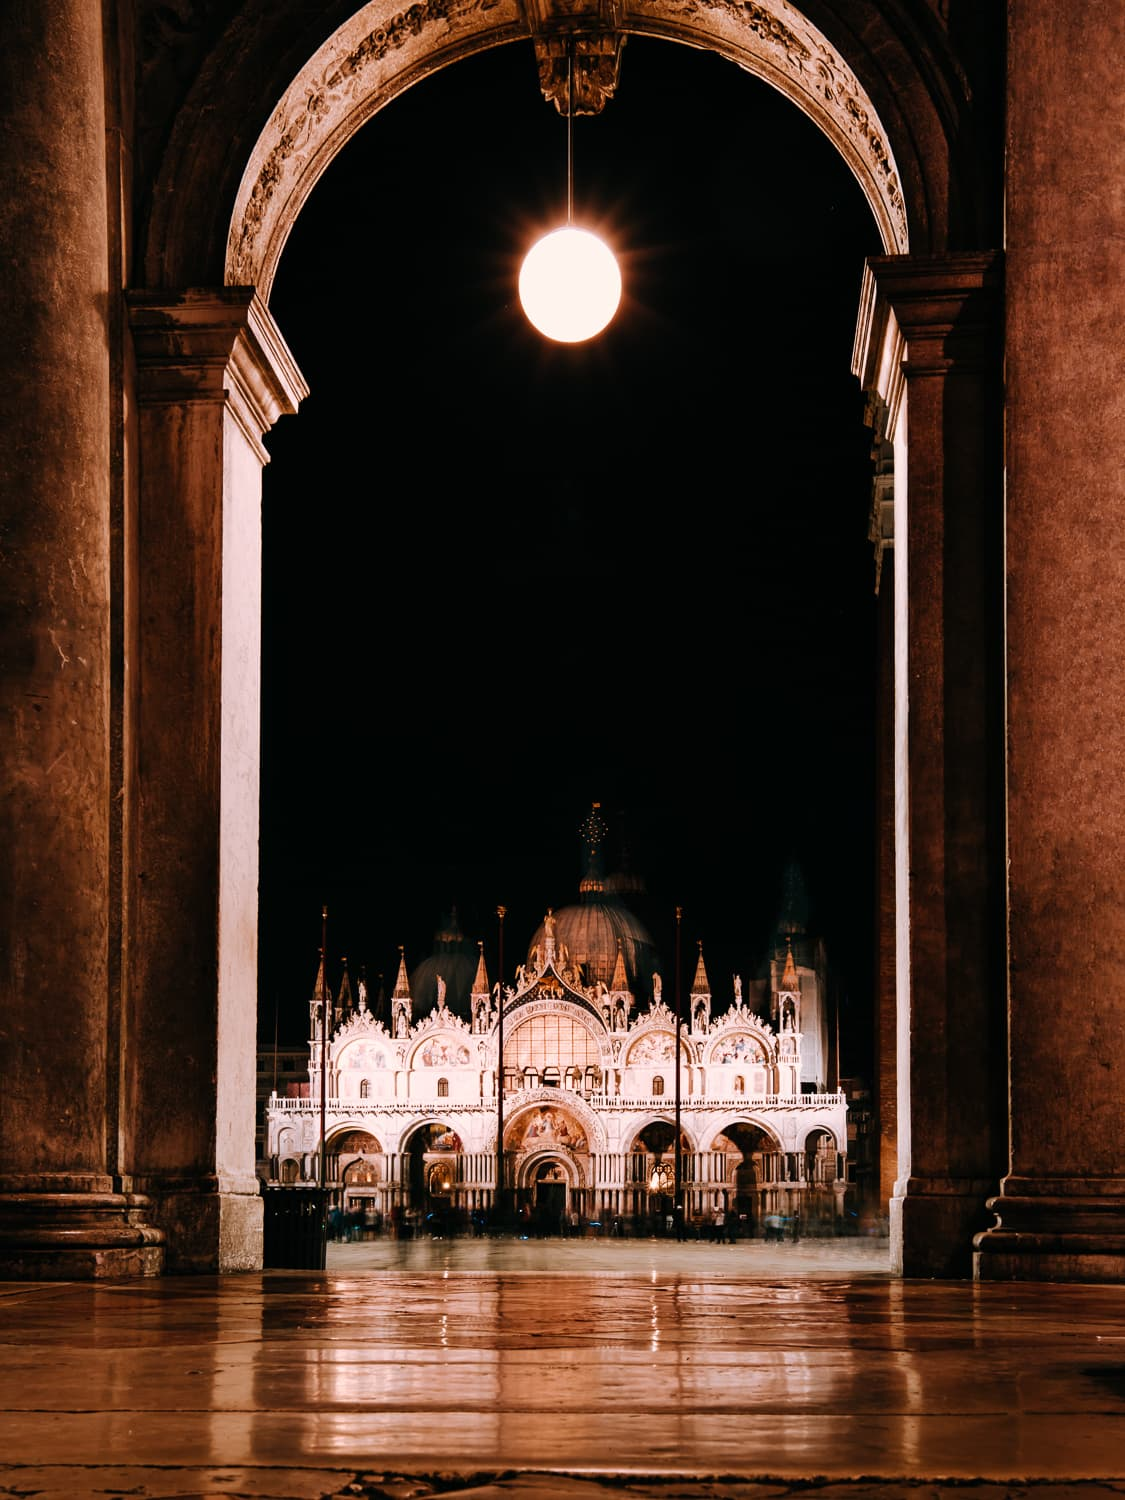 A look at the Basilica San Marco at night, photographed between some columns and arches.